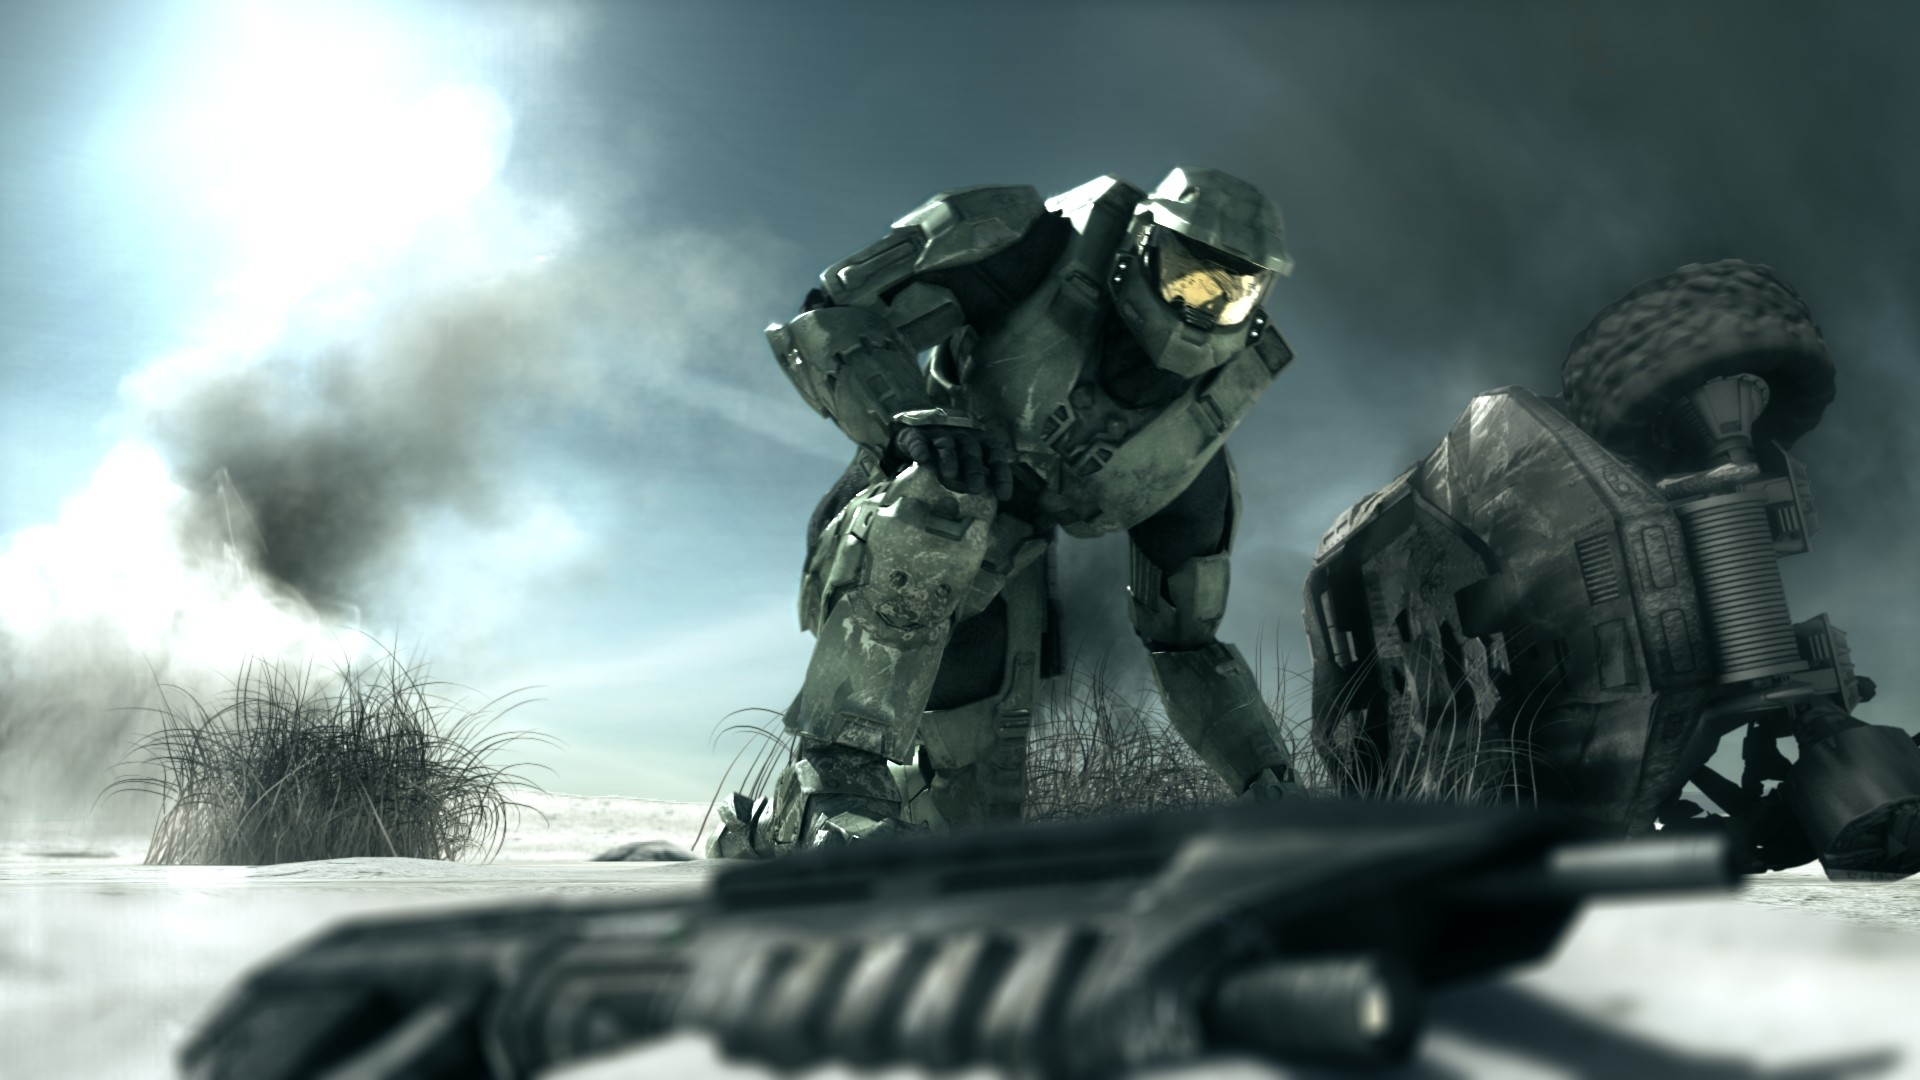 Halo-Wallpaper-5-by-mountwall-1 ?